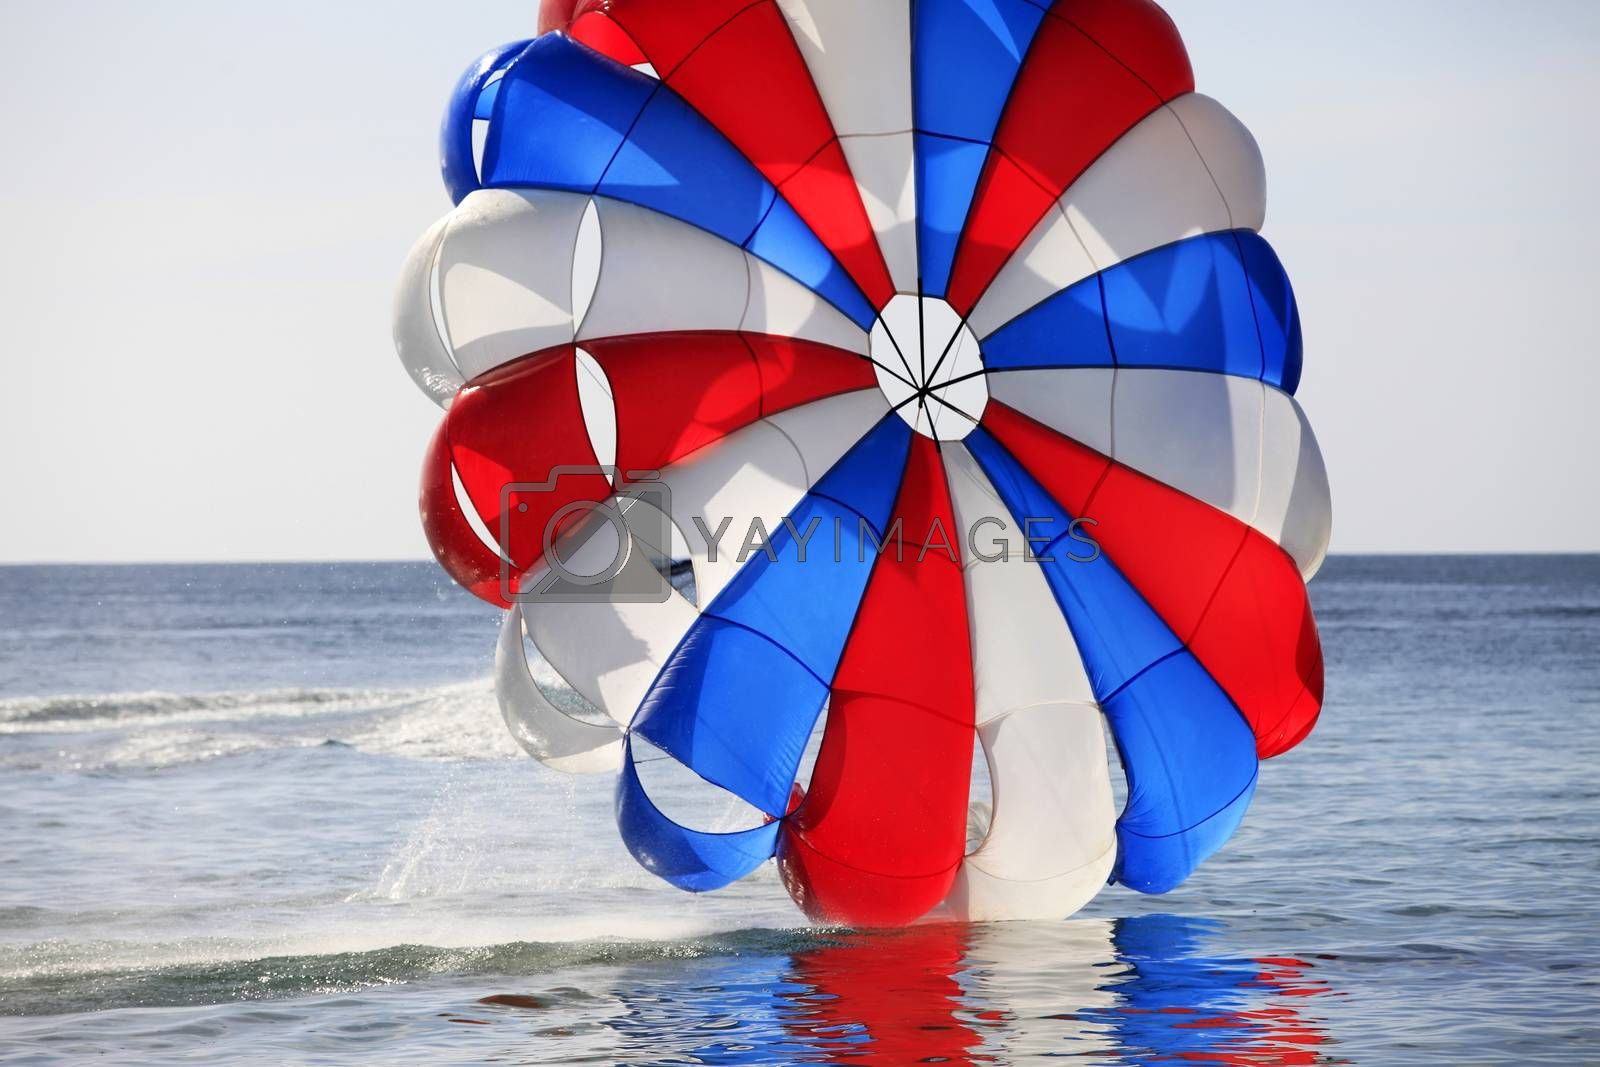 Parasailing activities in Vietnam. Phu Quoc